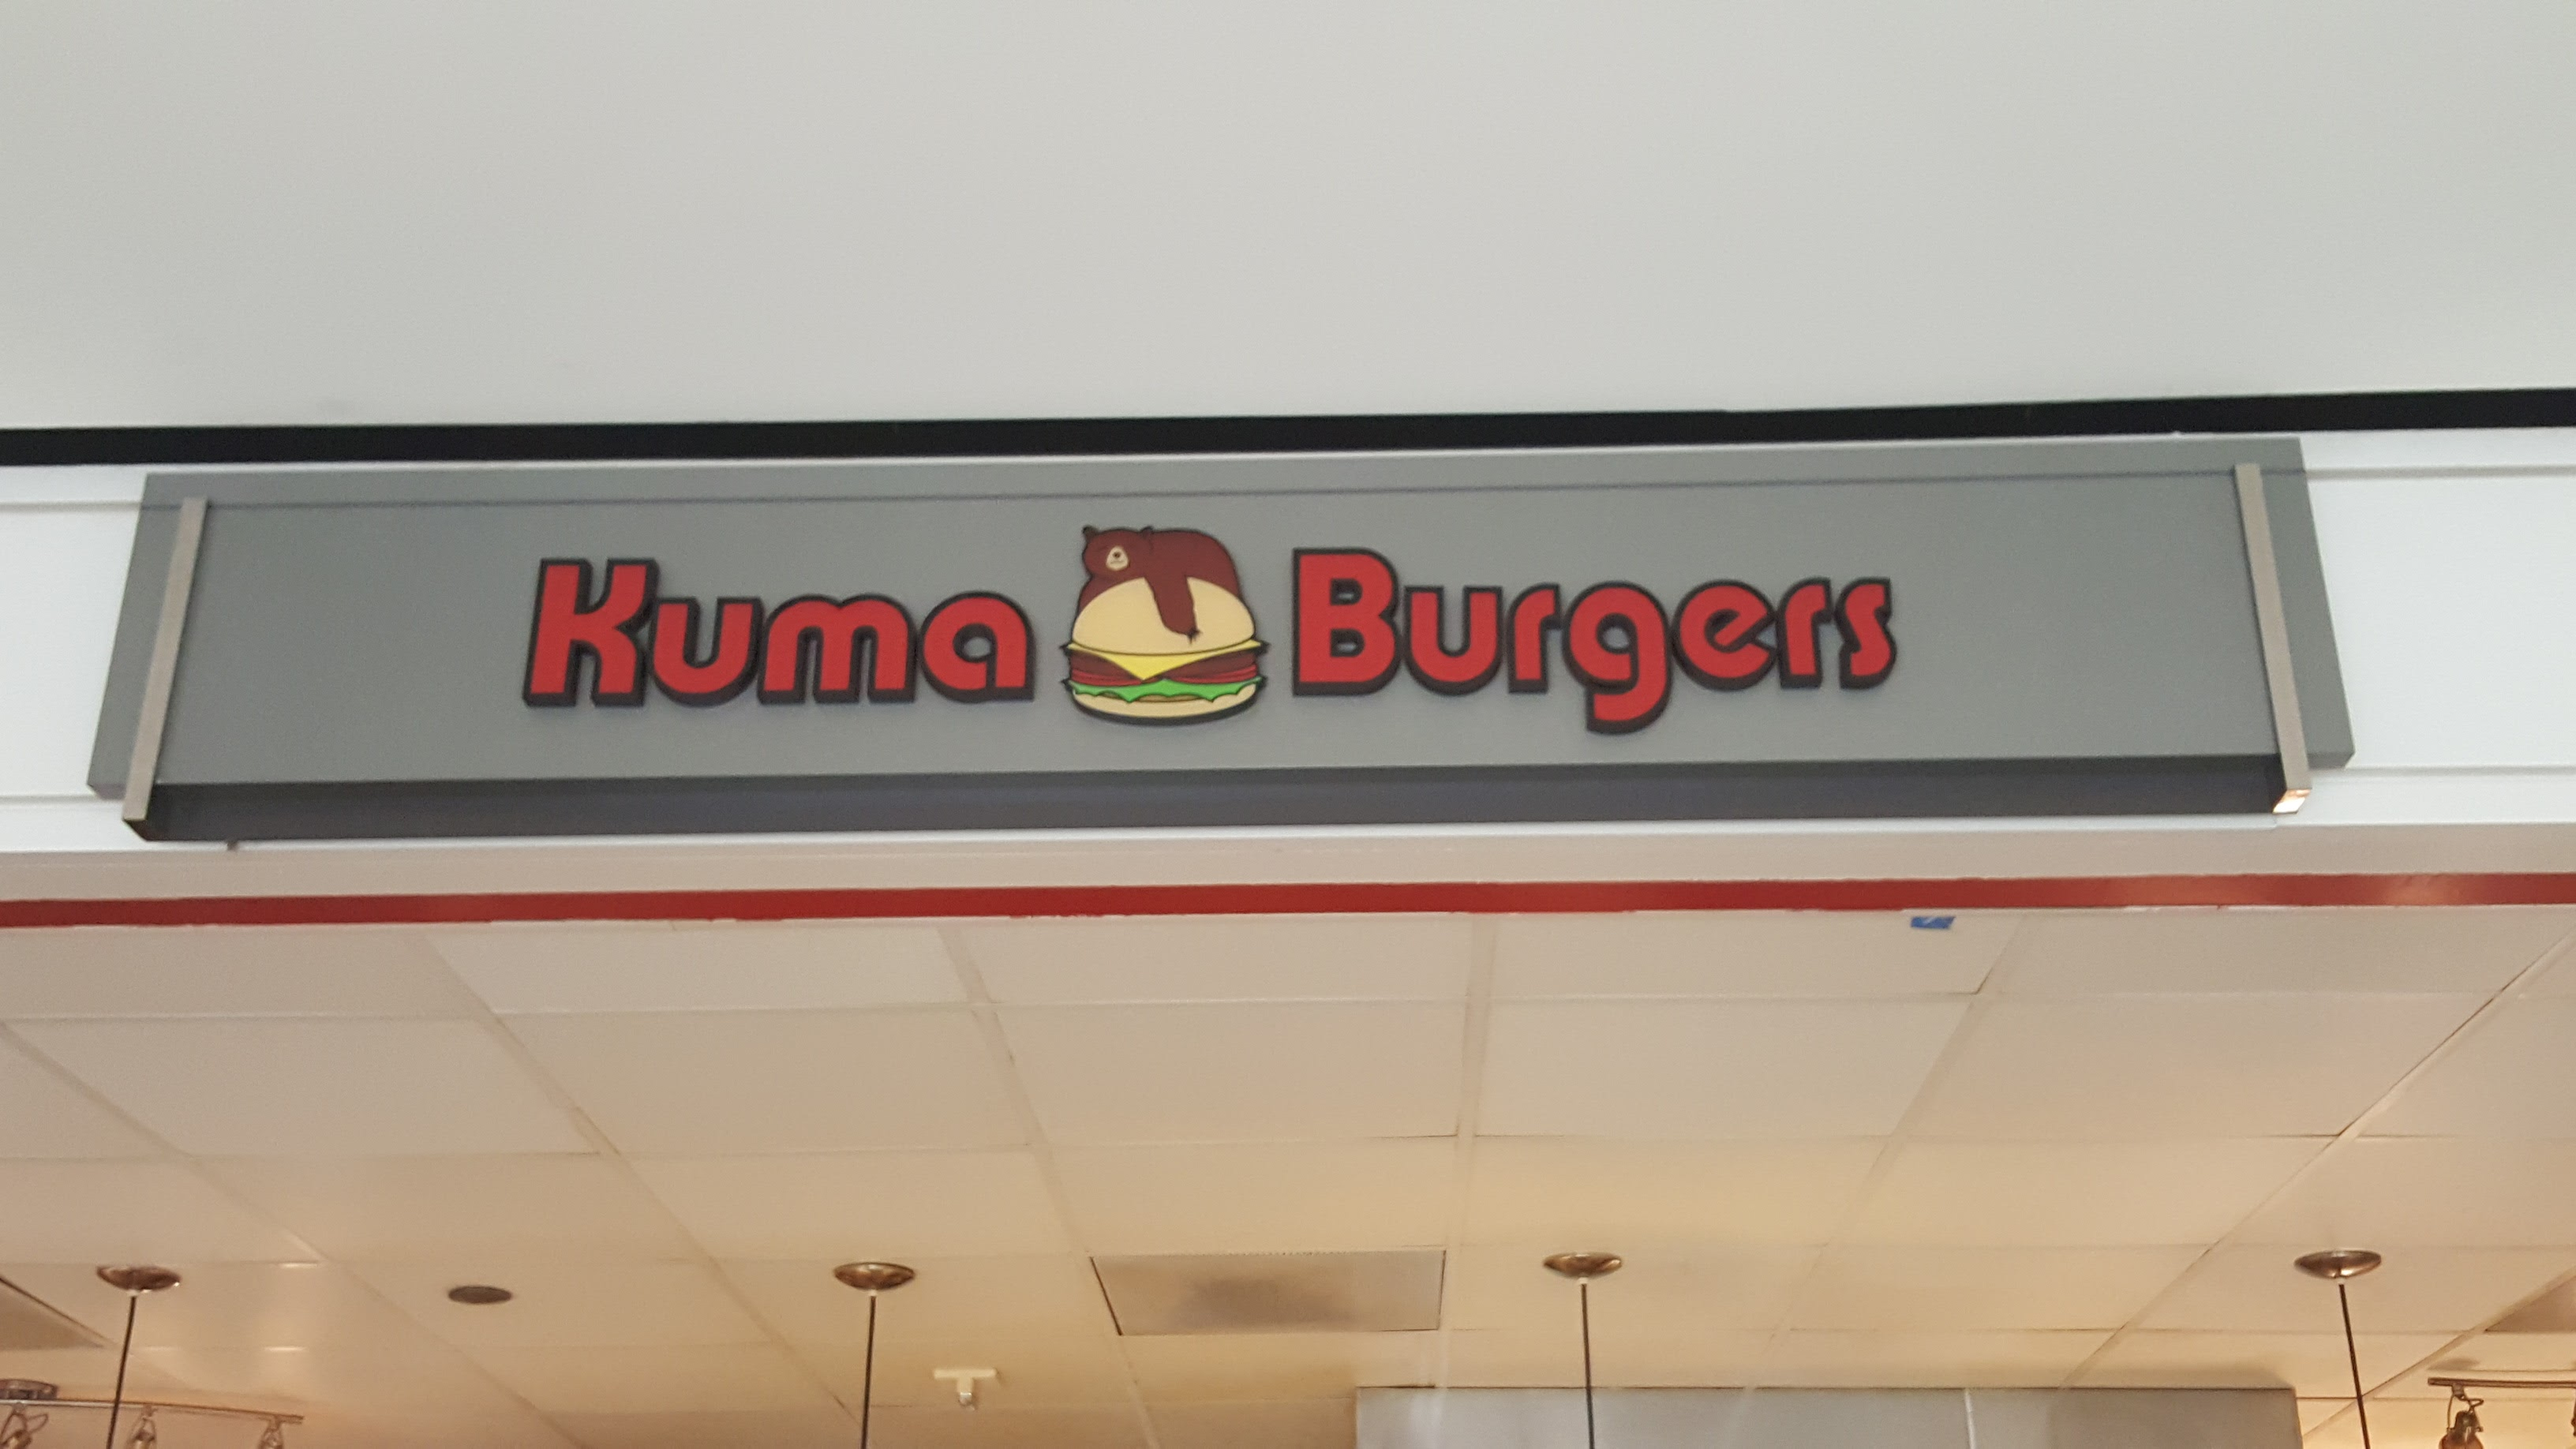 Come on over to greenway plaza for a kuma burger for Cuisine yousra